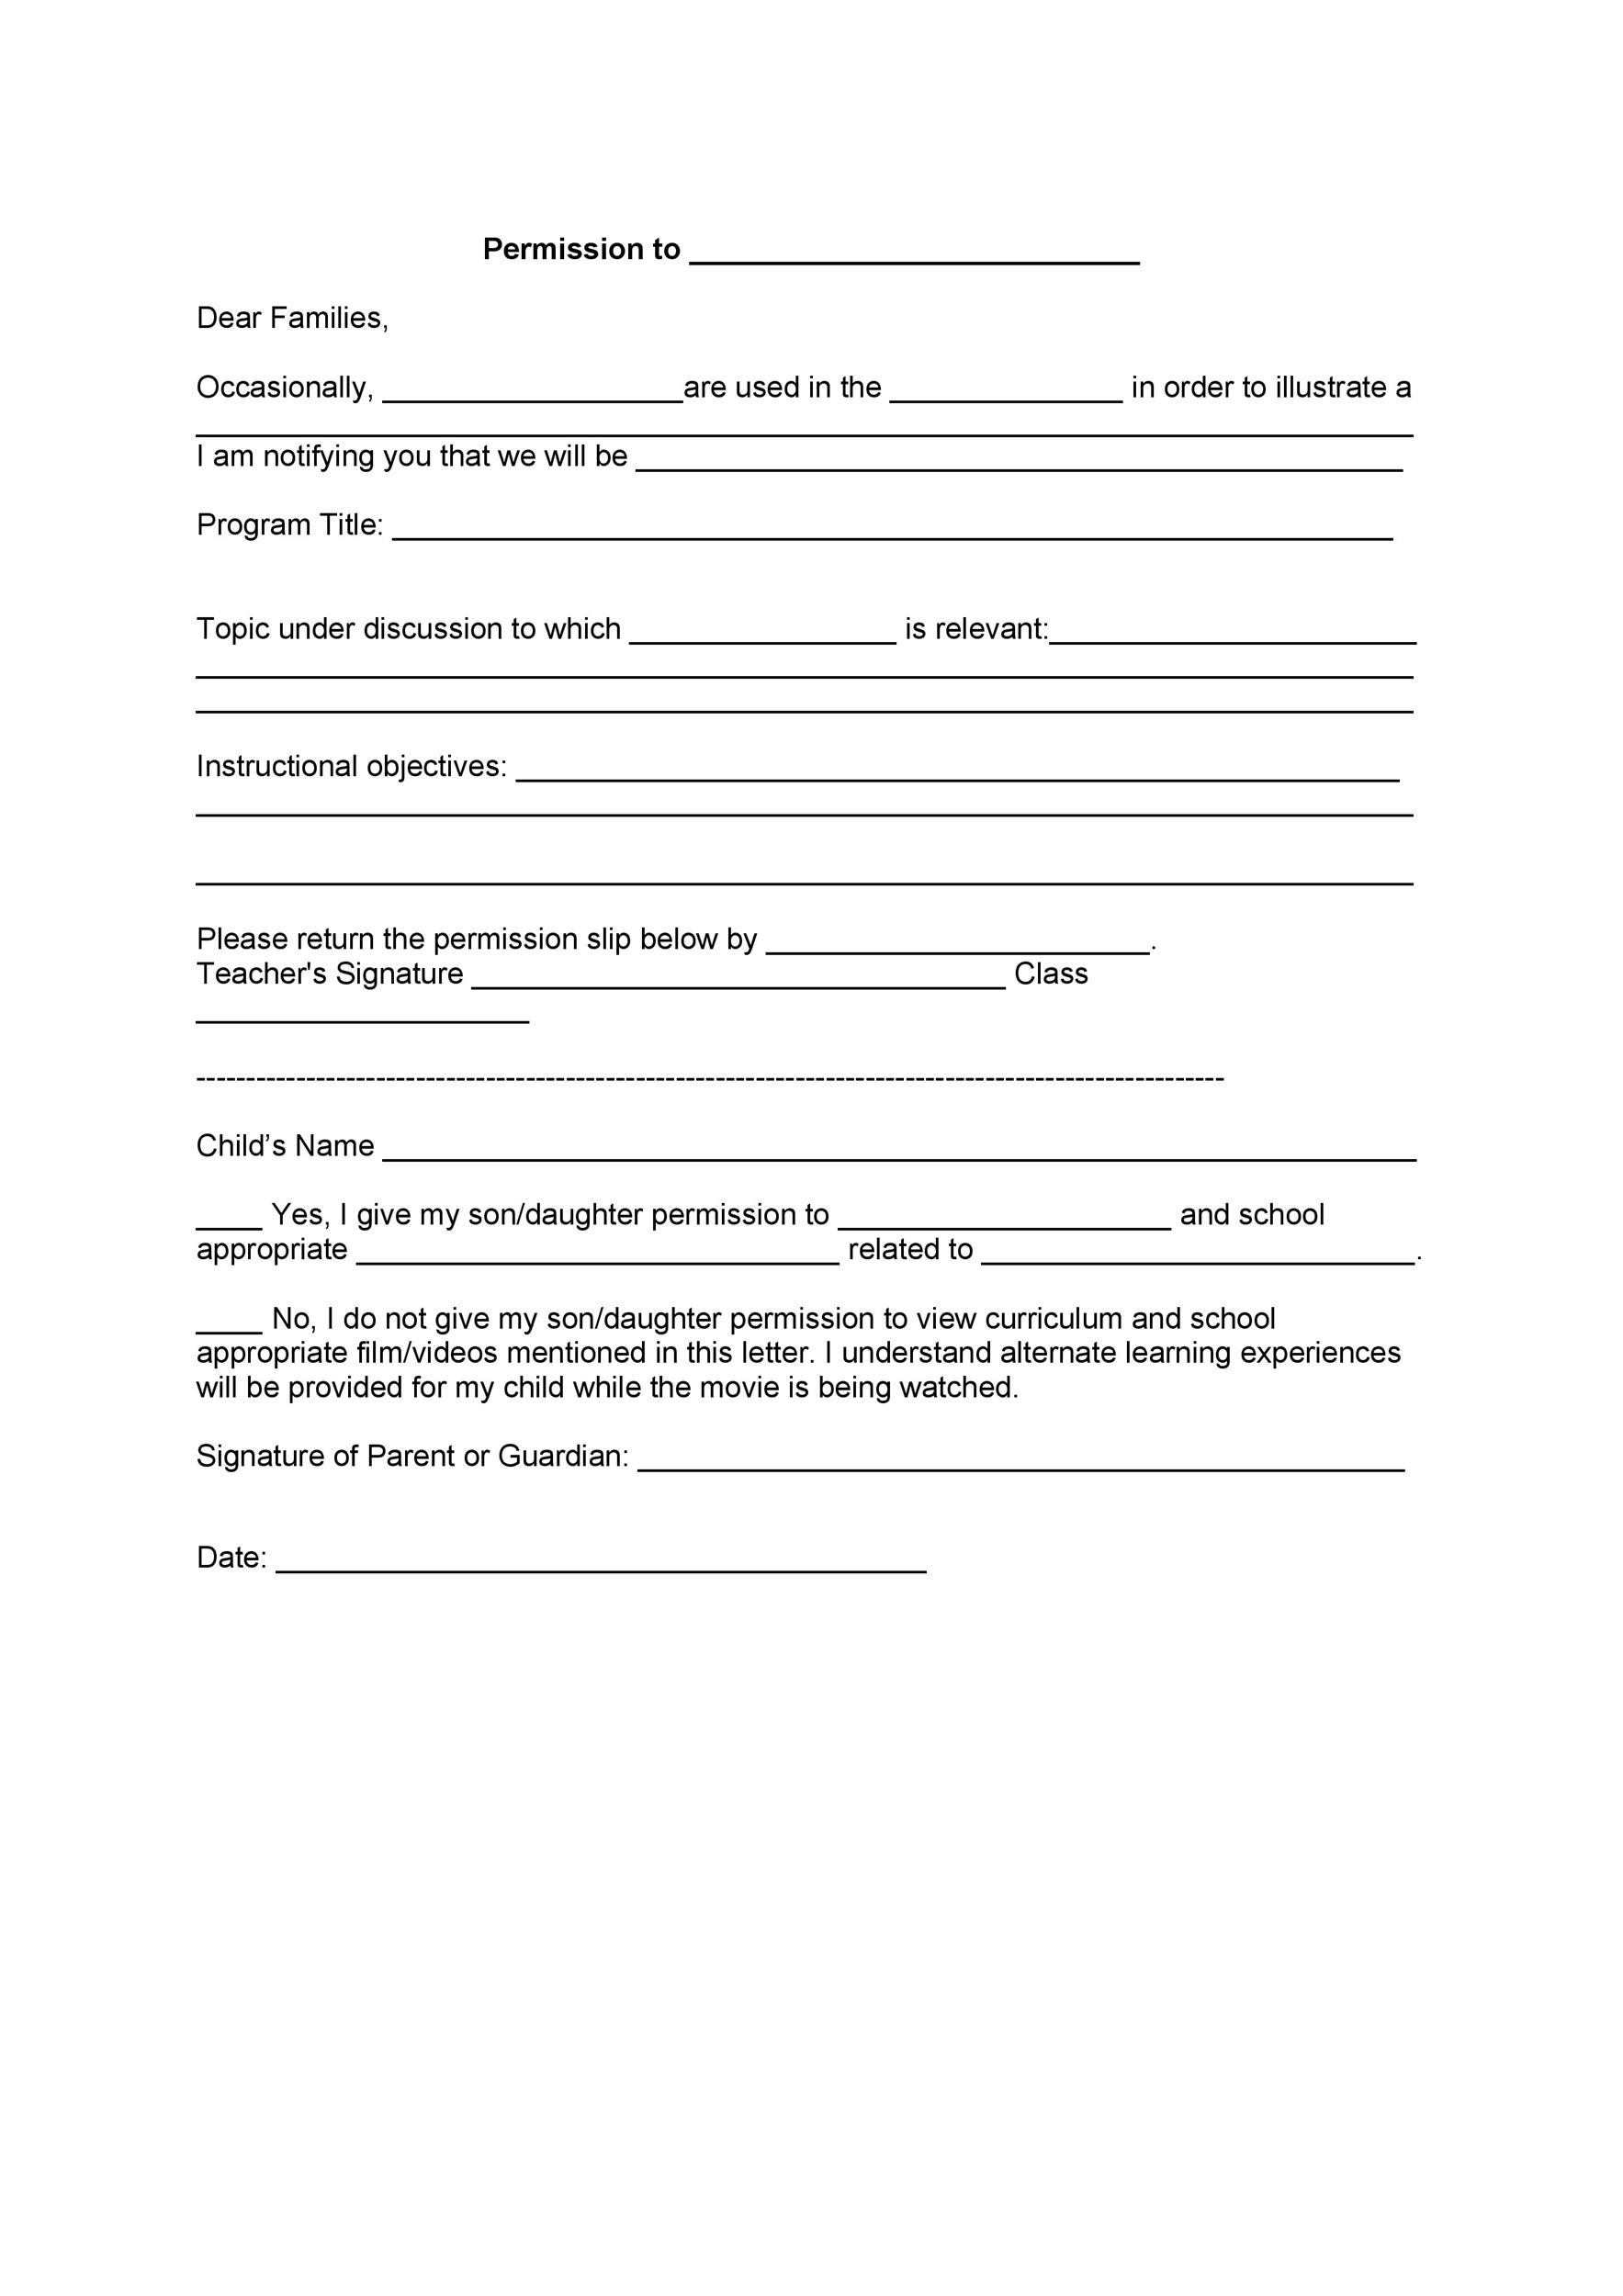 Permission slip templates field trip forms printable permission slip 16 altavistaventures Images